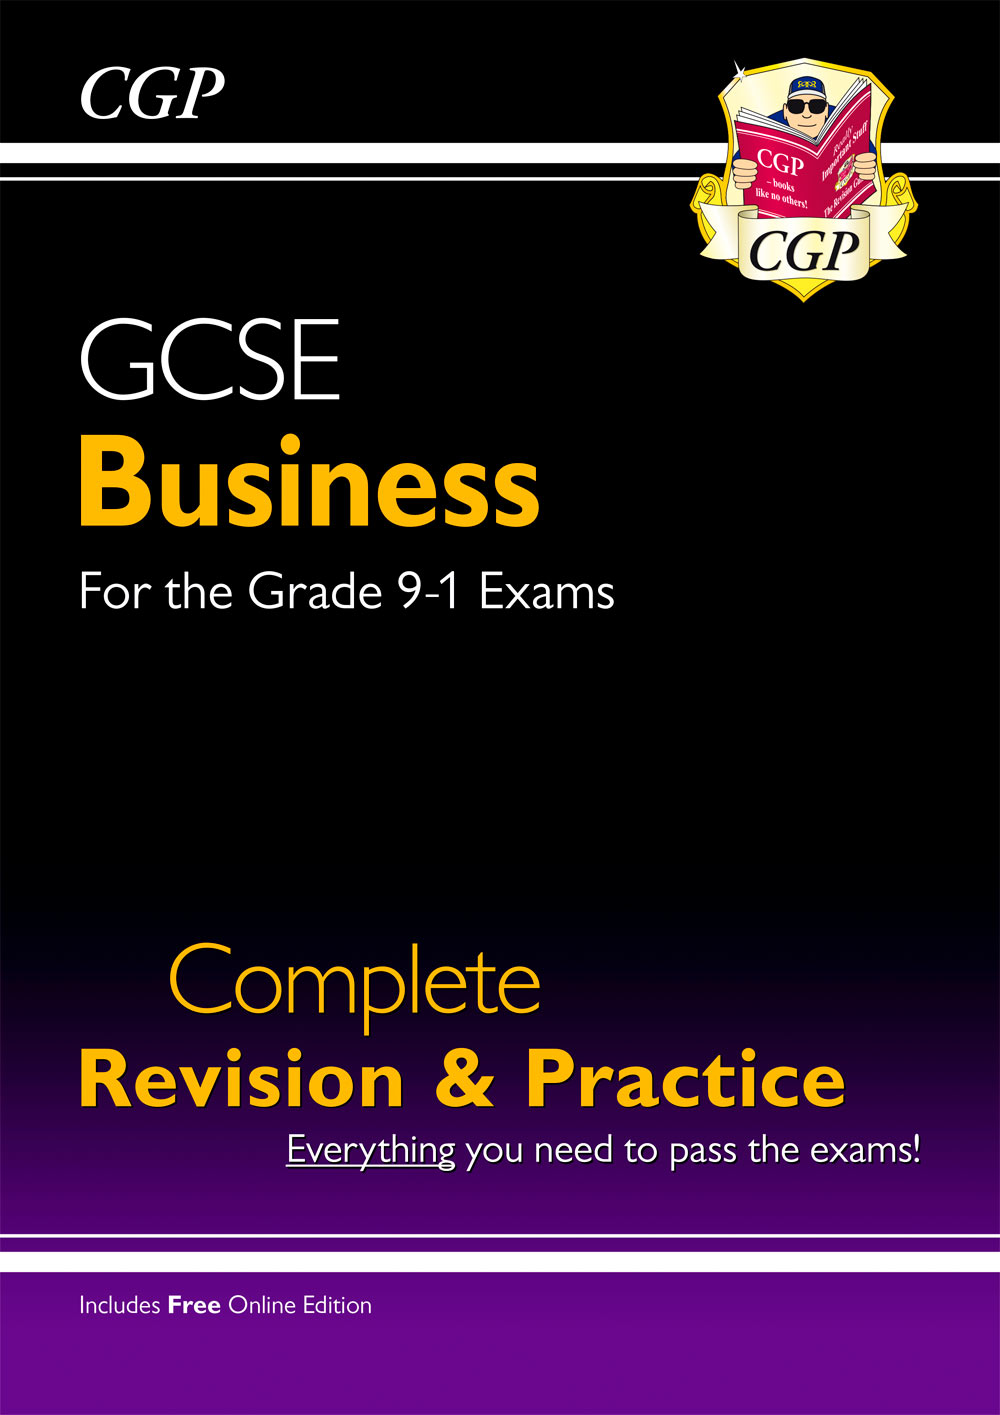 BUHS44 - GCSE Business Complete Revision and Practice - for the Grade 9-1 Course (with Online Editio